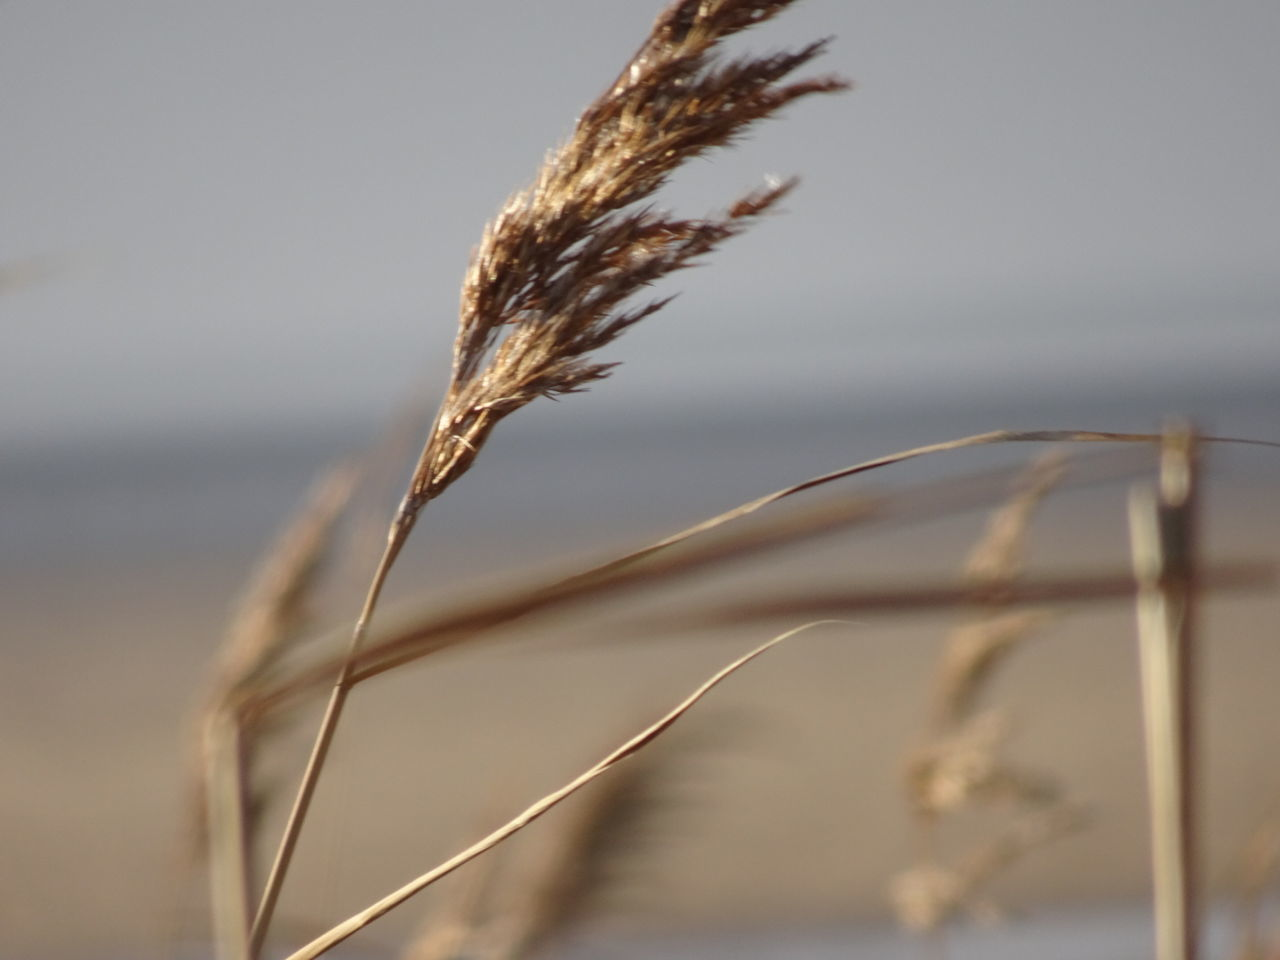 EyeEm Selects Grasses In Foregound Beach Photography